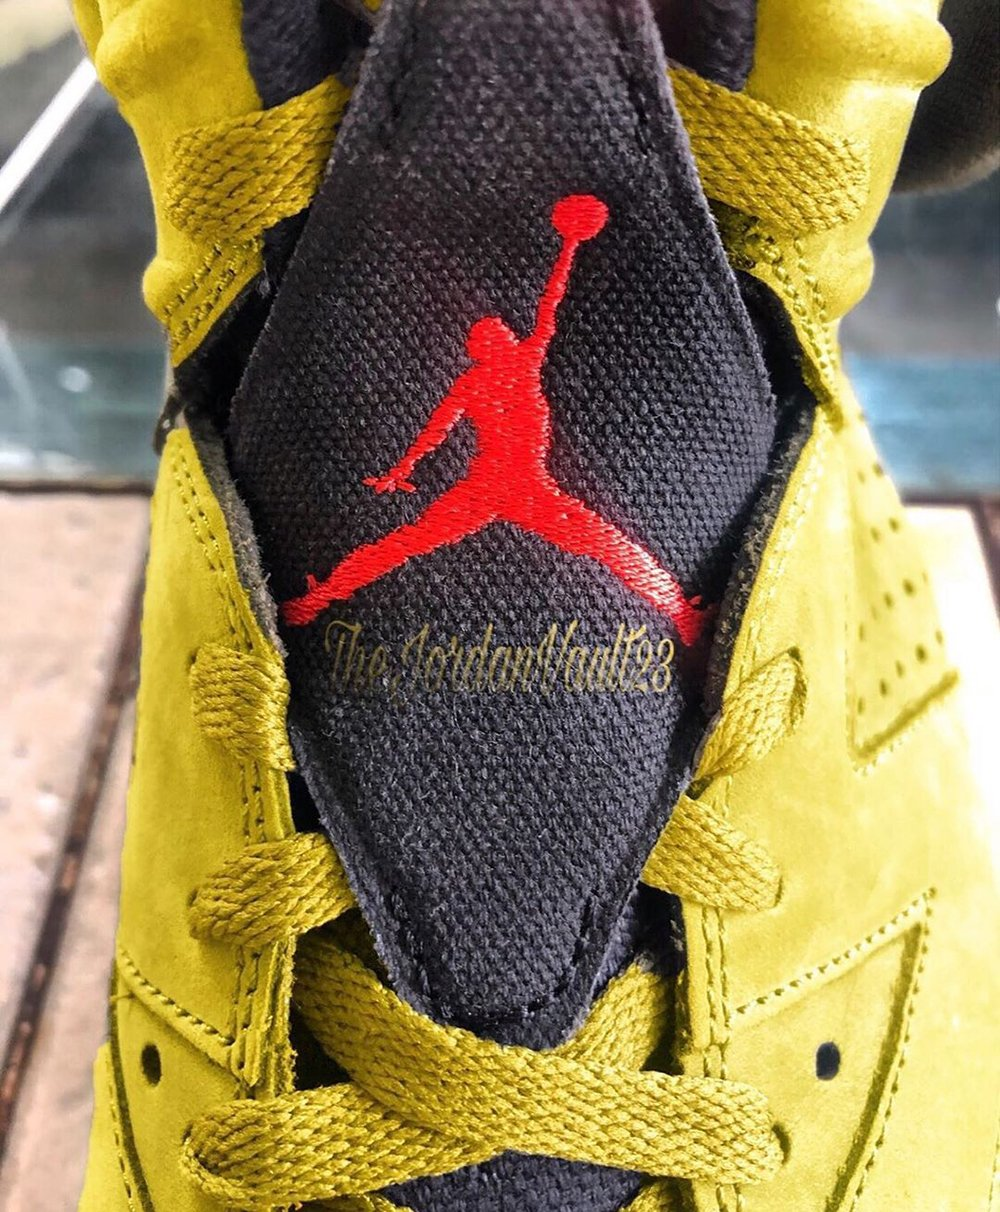 Yellow Cactus Jack Travis Scott Air Jordan 6